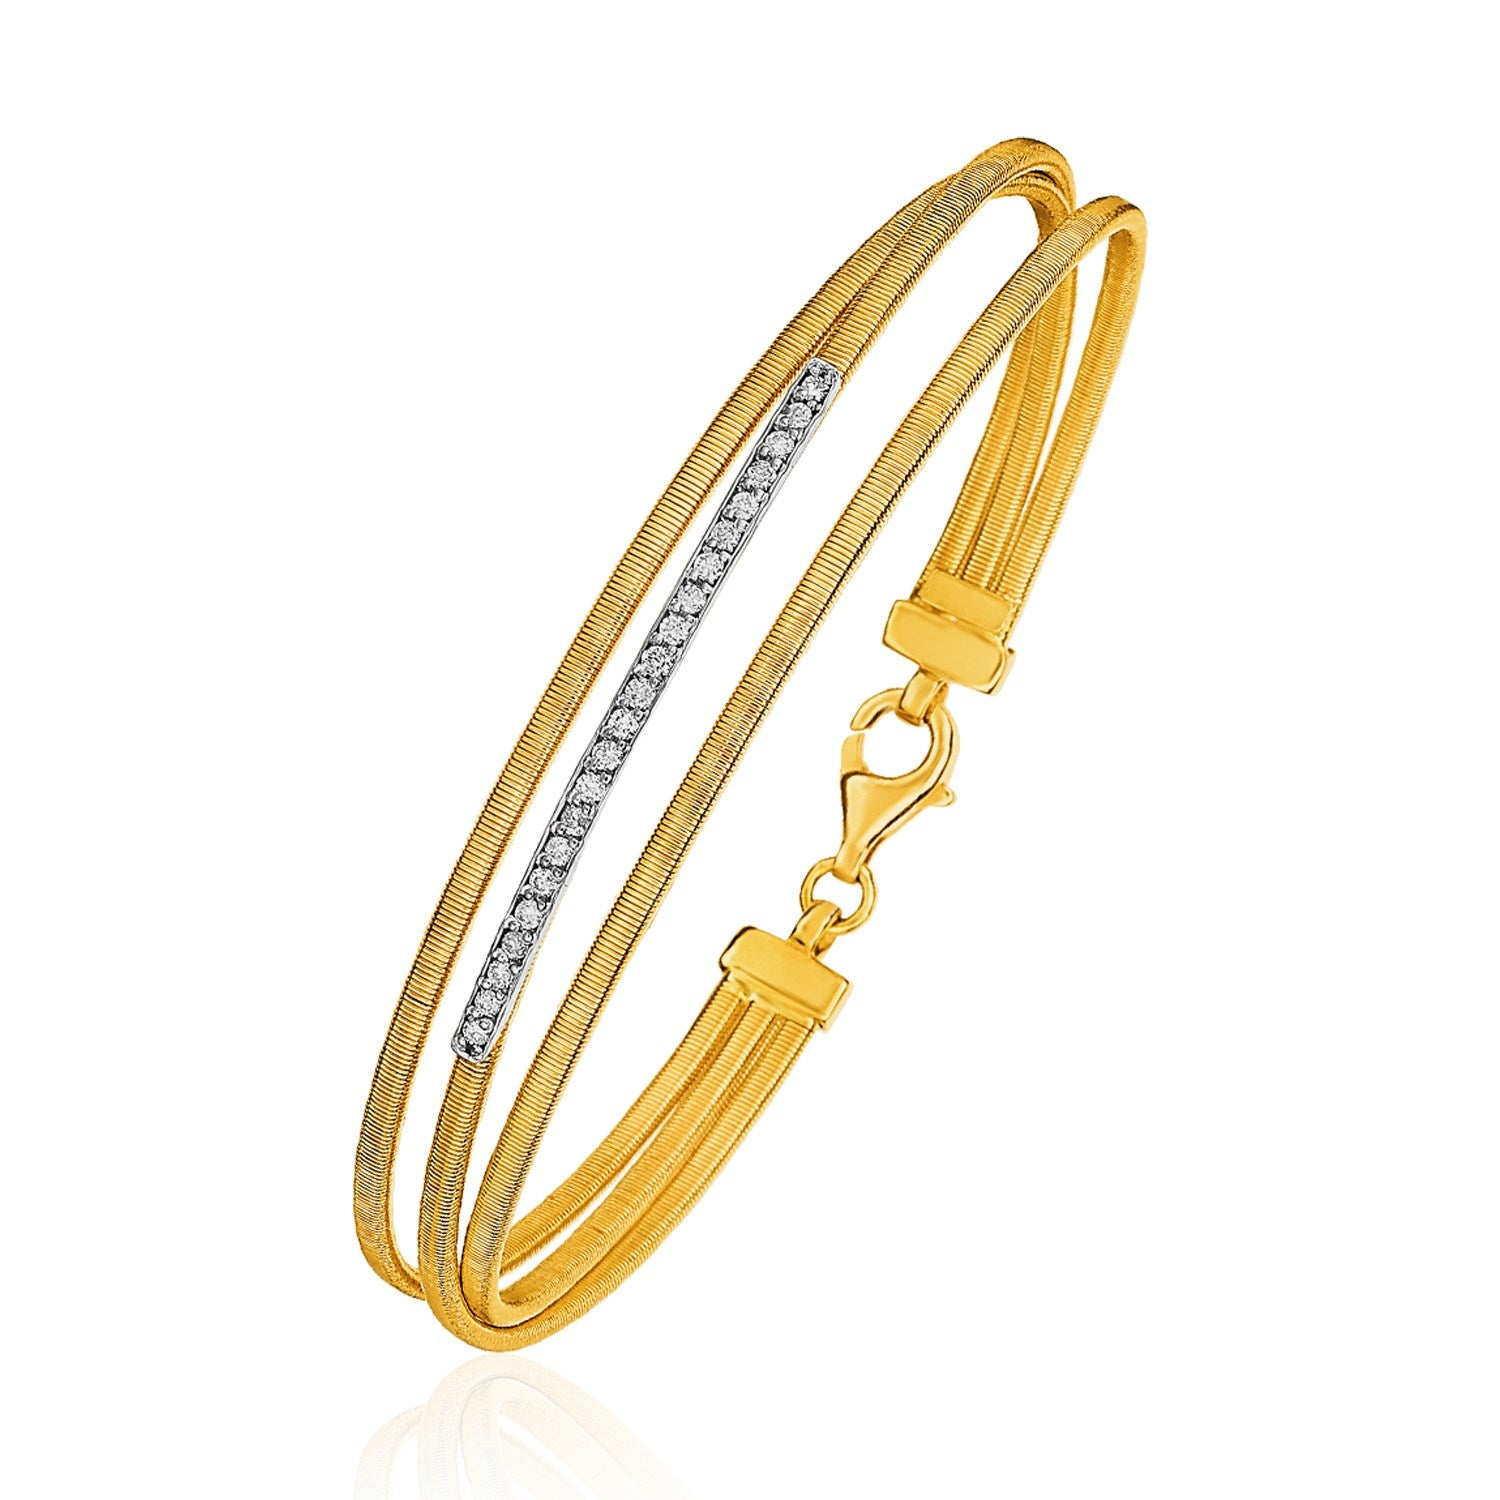 bangles one il solid bangle bracelet listing zoom fullxfull gold thin